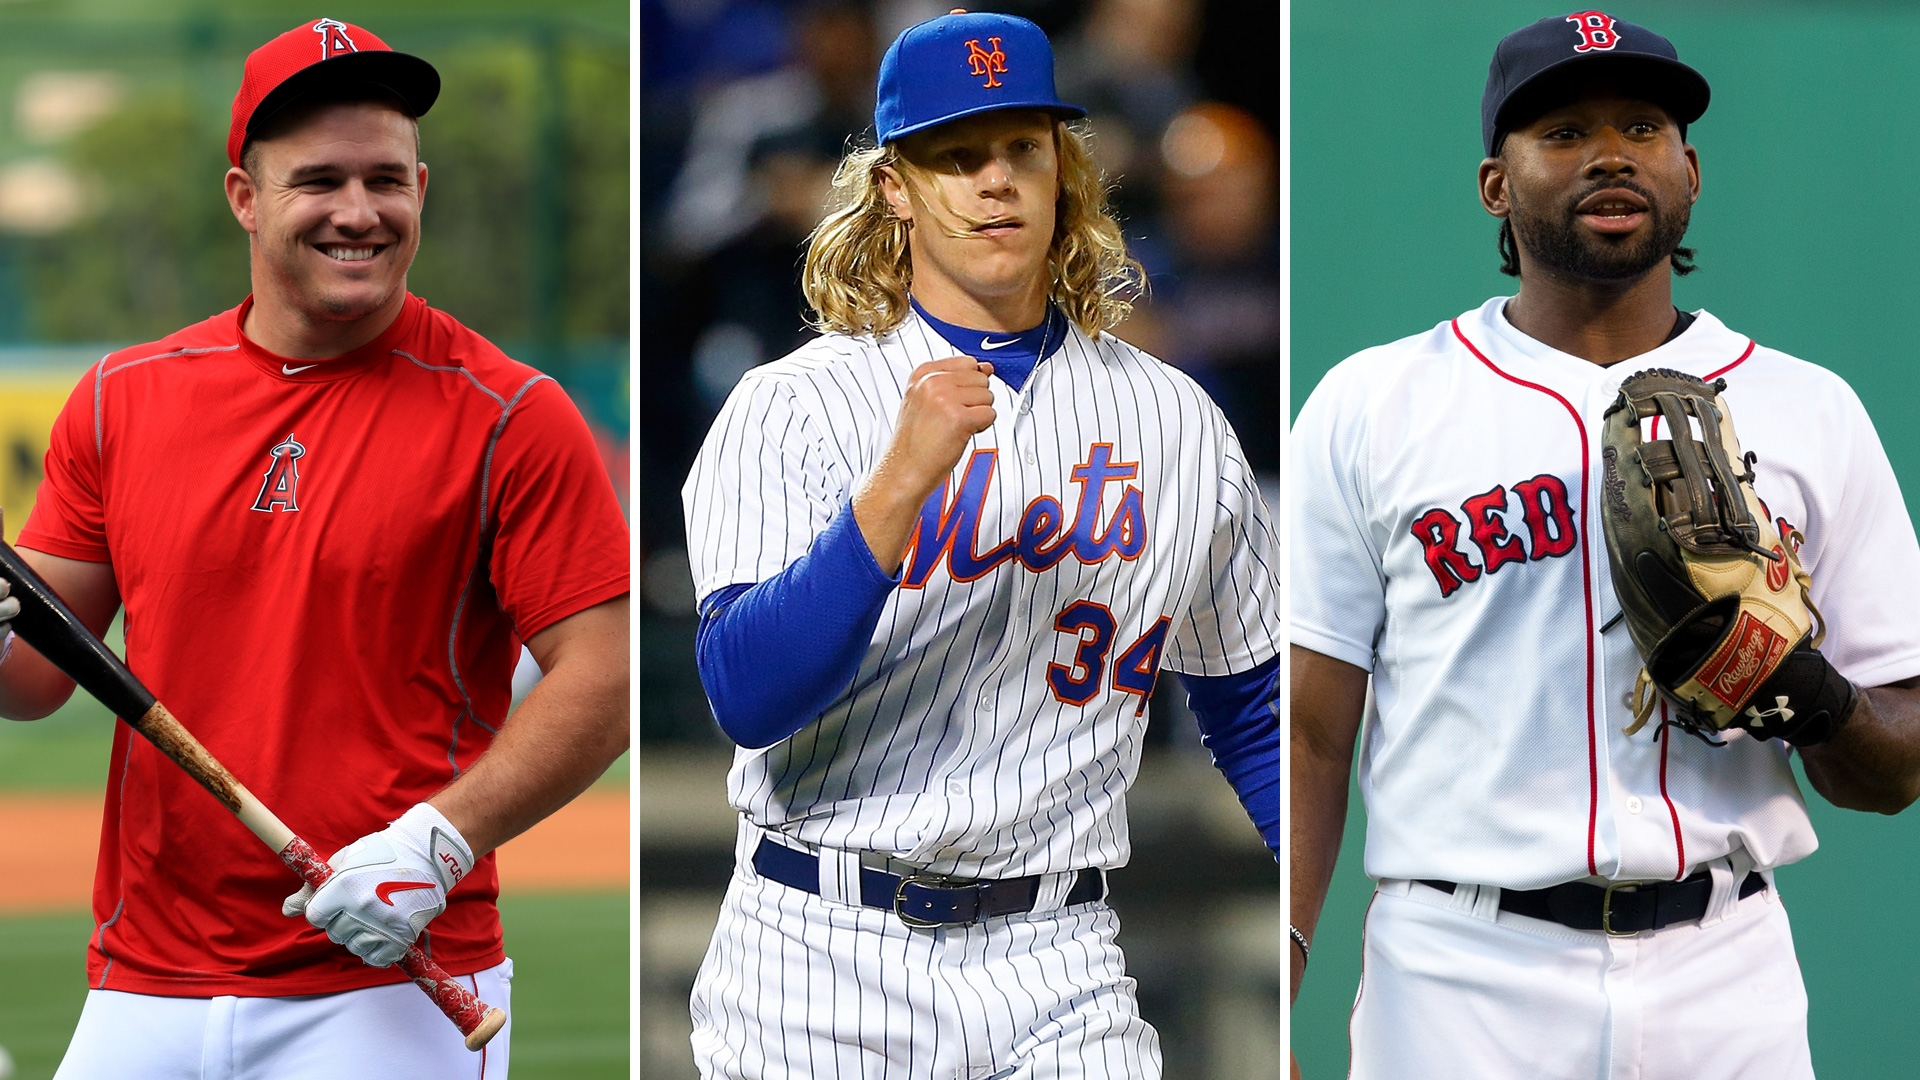 Split-mike-trout-noah-syndergaard-jackie-bradley-jr-052416-getty-ftrjpg_4pln2f2vrd641cgwn70q9ye1g